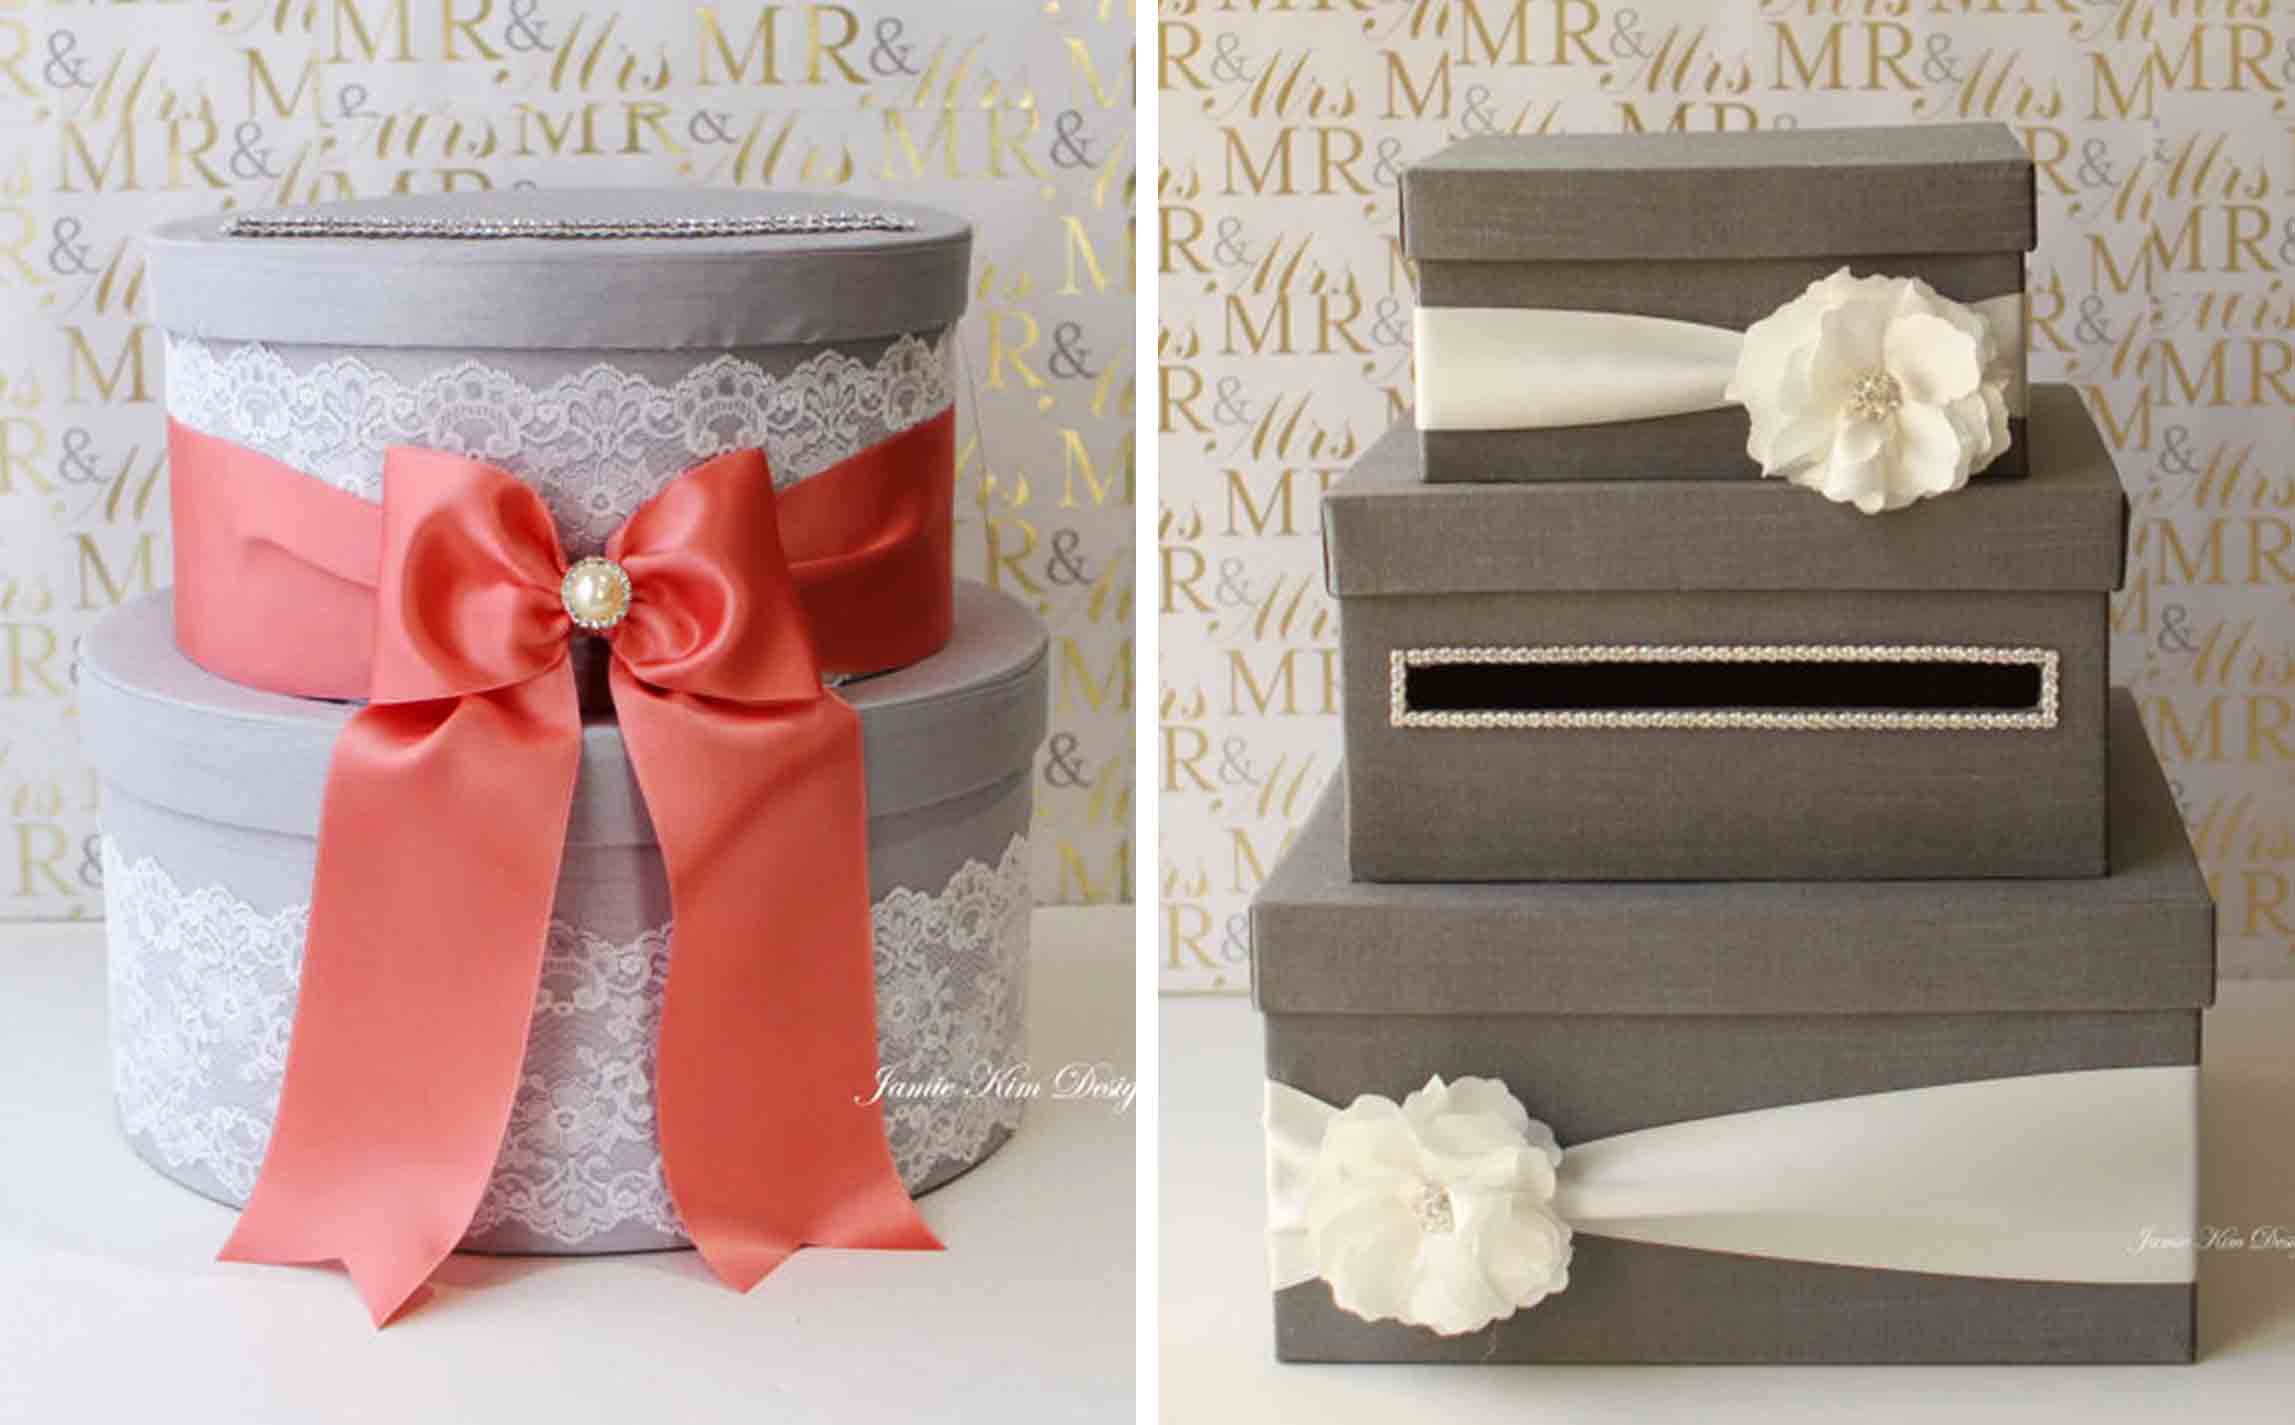 3 DIY Wedding Card Boxes For Your Guests To Slip Your Congrats Into